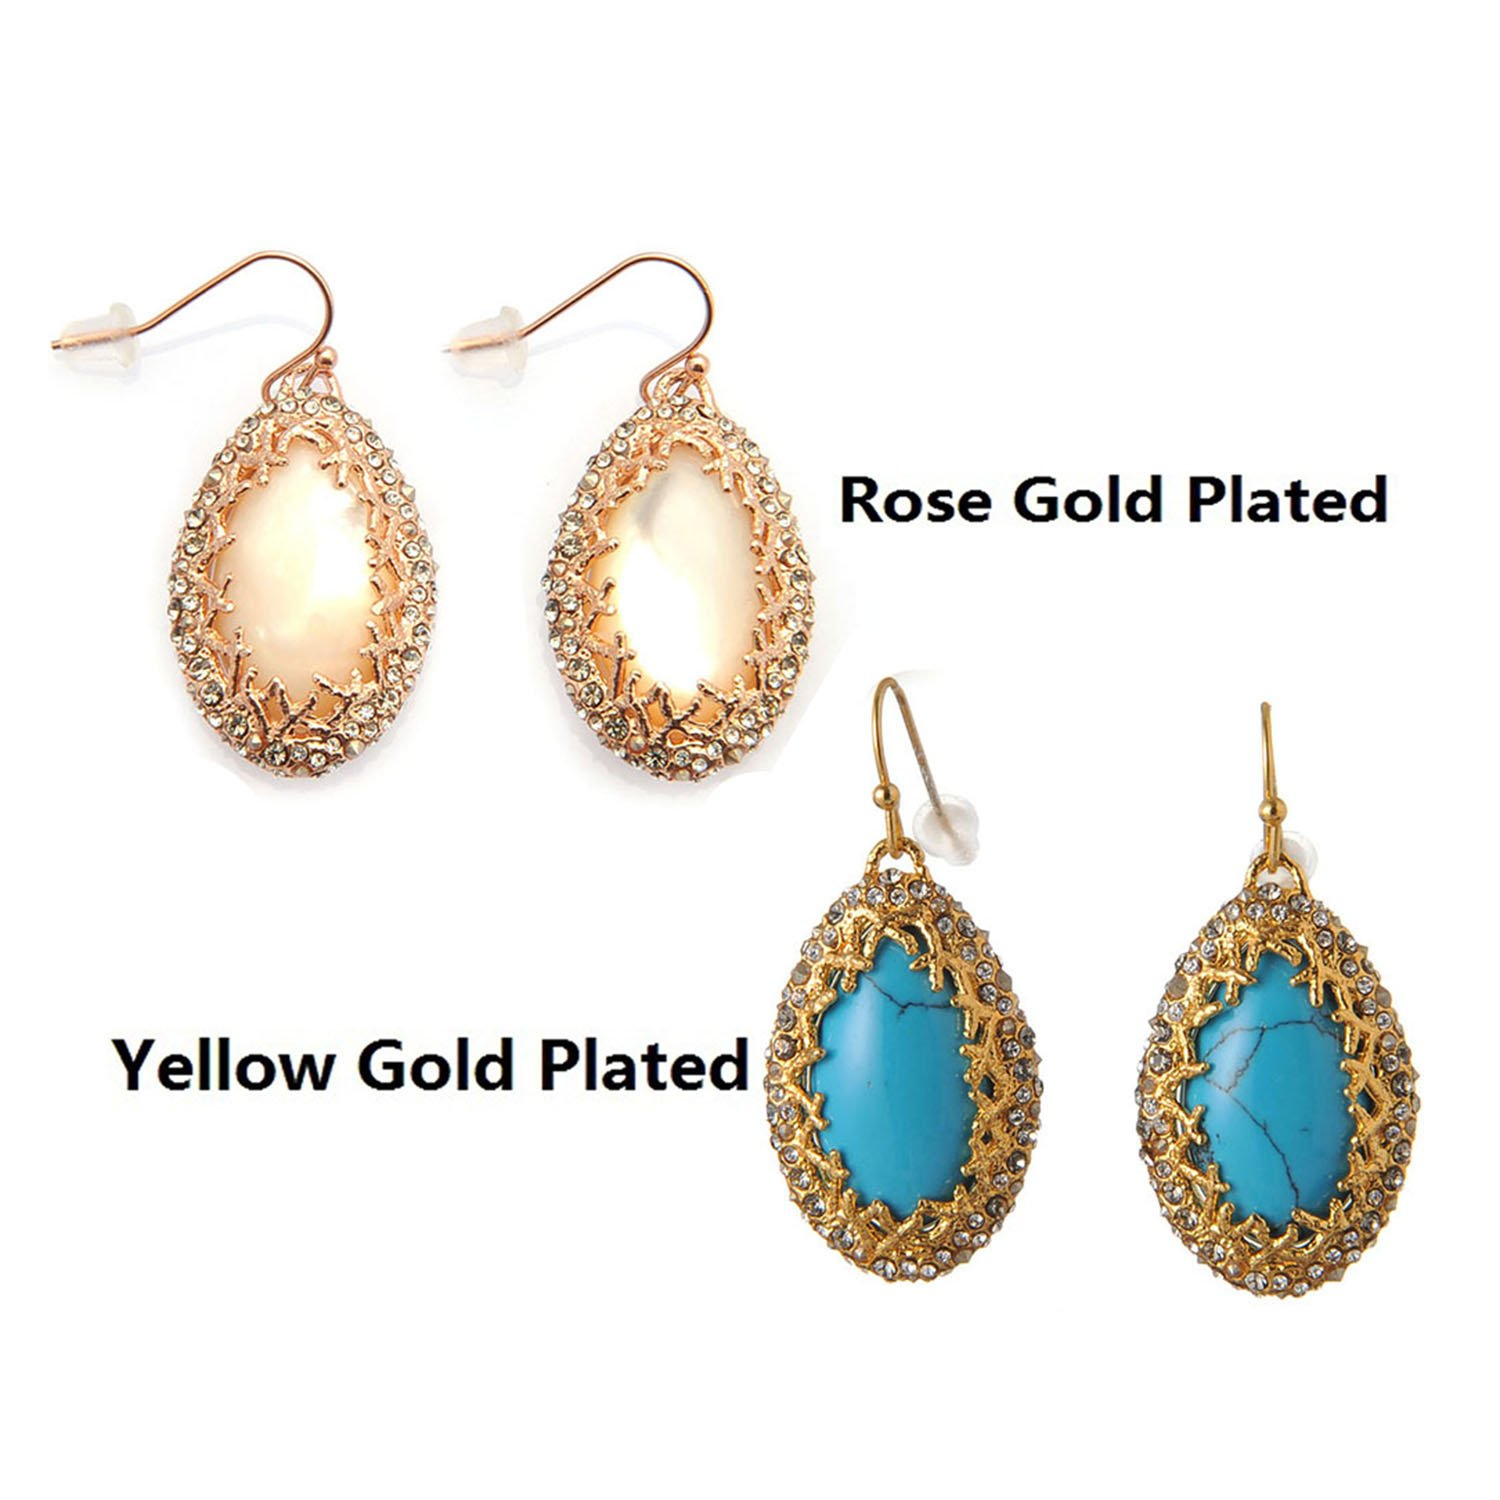 De Buman 18k Gold Plated Turquoise or Rose Gold Plated Mother-of-Pearl Earrings